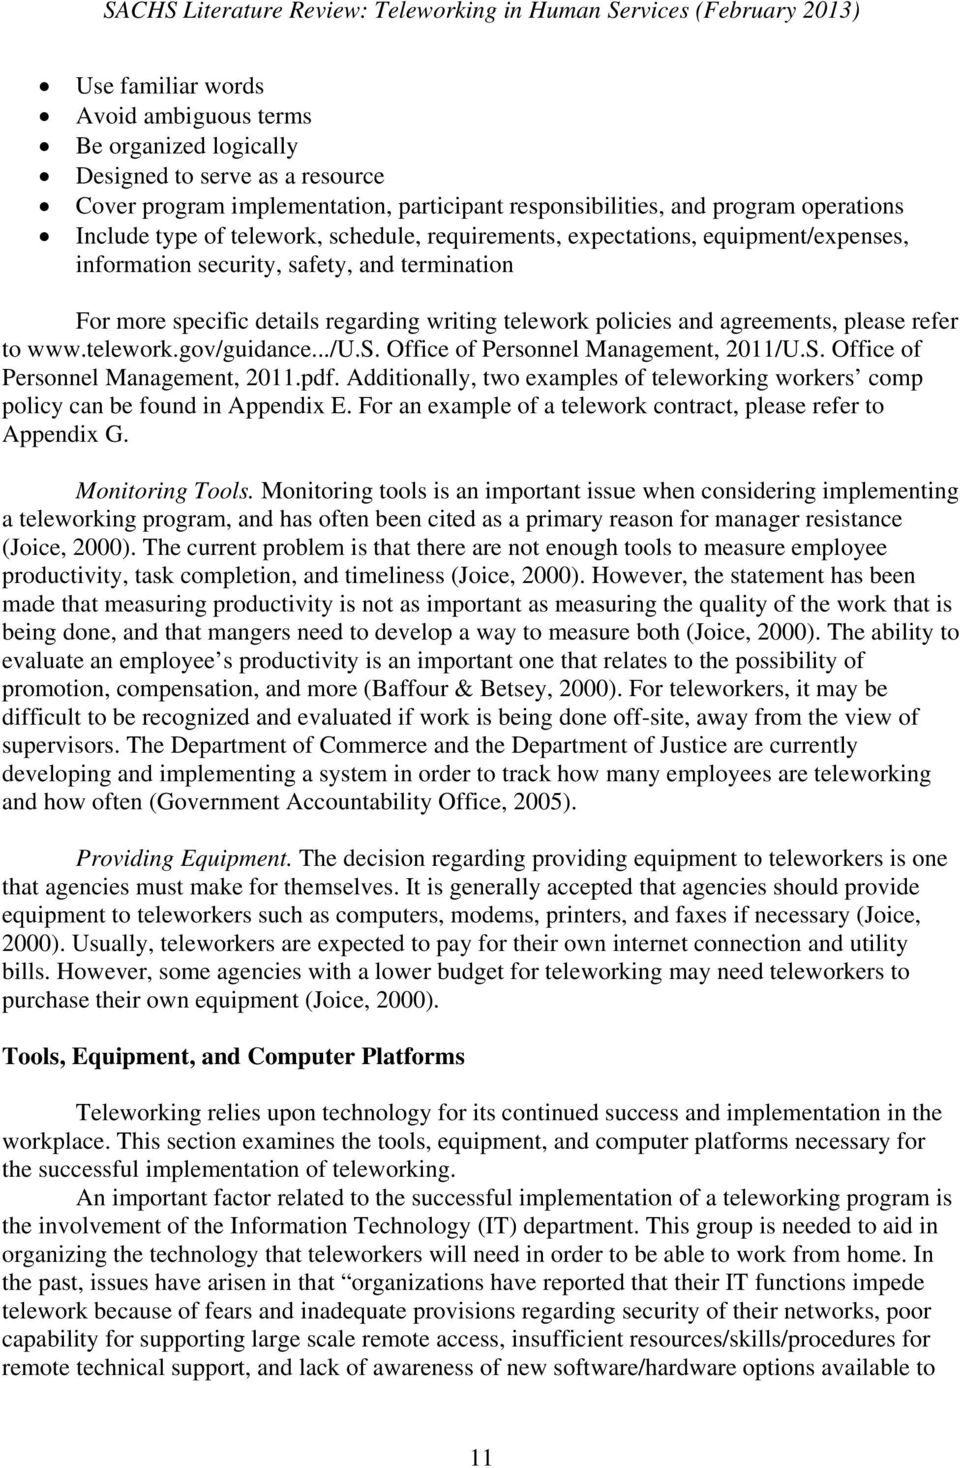 Literature Review Teleworking In Human Services Pdf